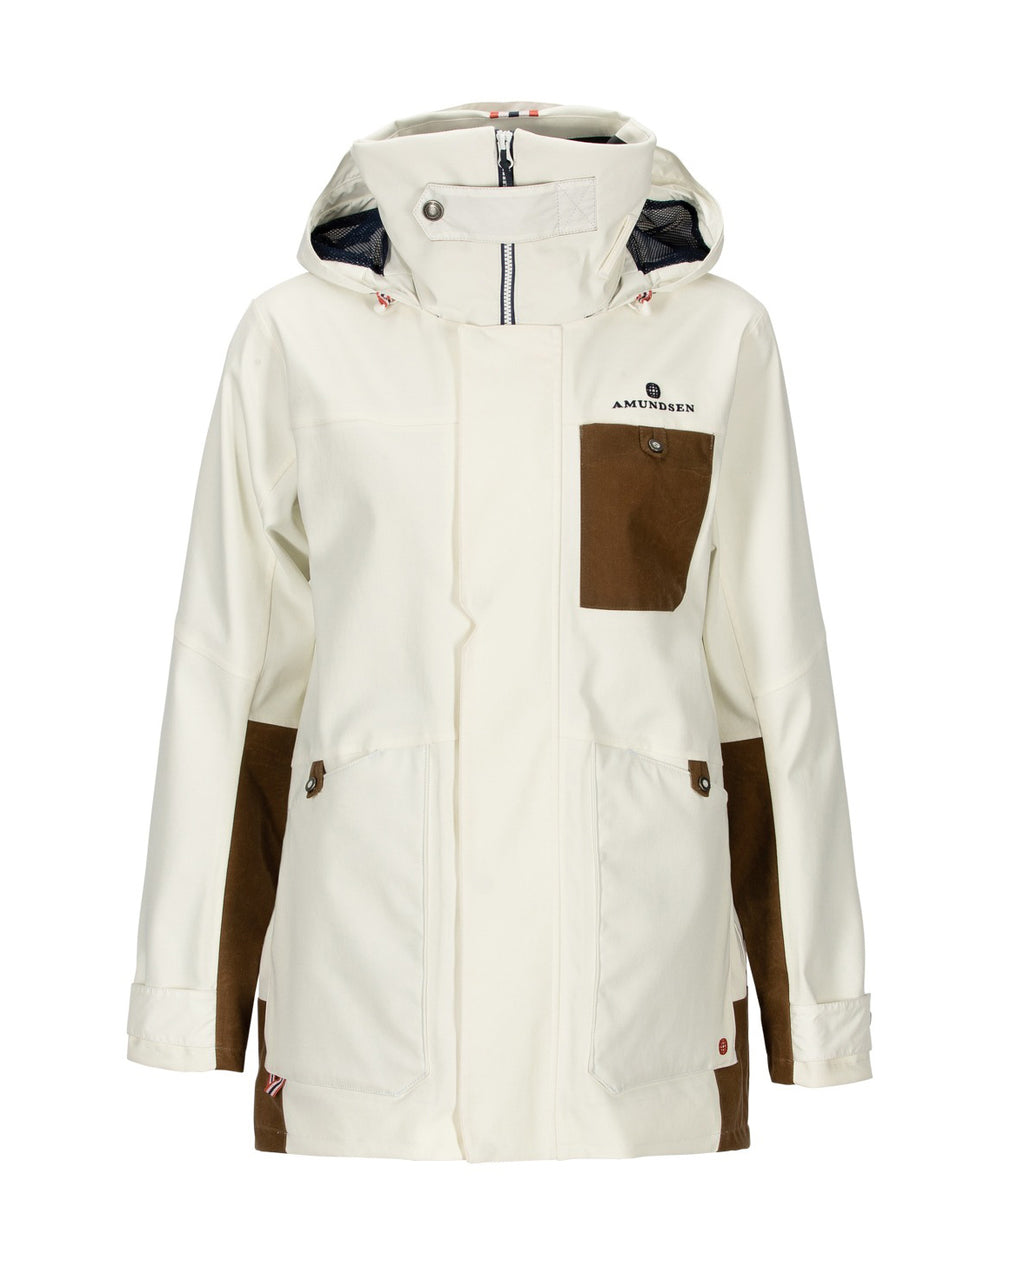 The design combines the classic marine style with a true Amundsen Sports signoff, and with the jacket built in sturdy nominated Nordic 2 ply fabrication, this jacket has what it takes to keep you dry and warm. Deck is a versatile jacket with numerous features ensuring a wide range of use on and off shore.